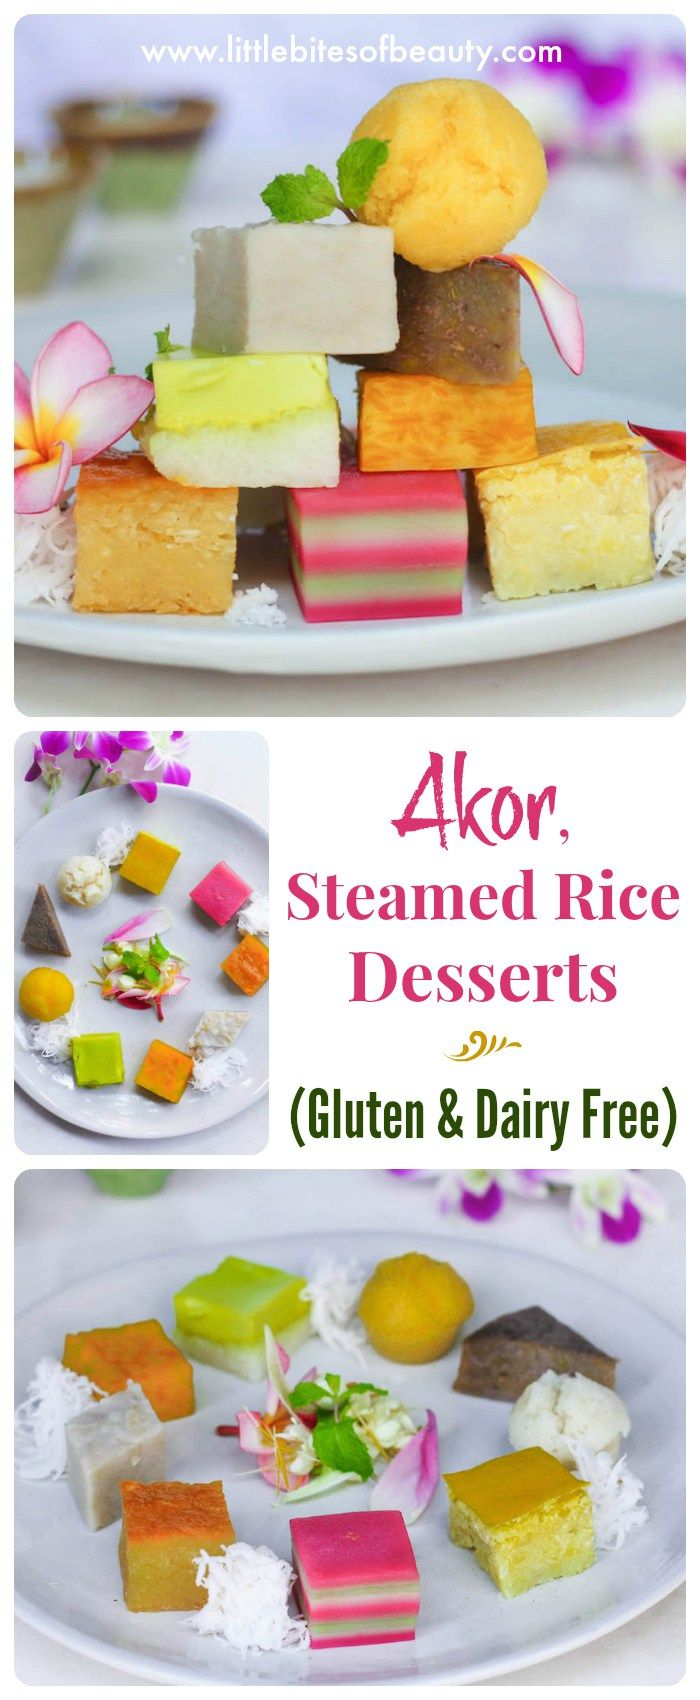 AKOR is a typical Cambodian dessert that's naturally free fro Gluten, Dairy and Sugar!